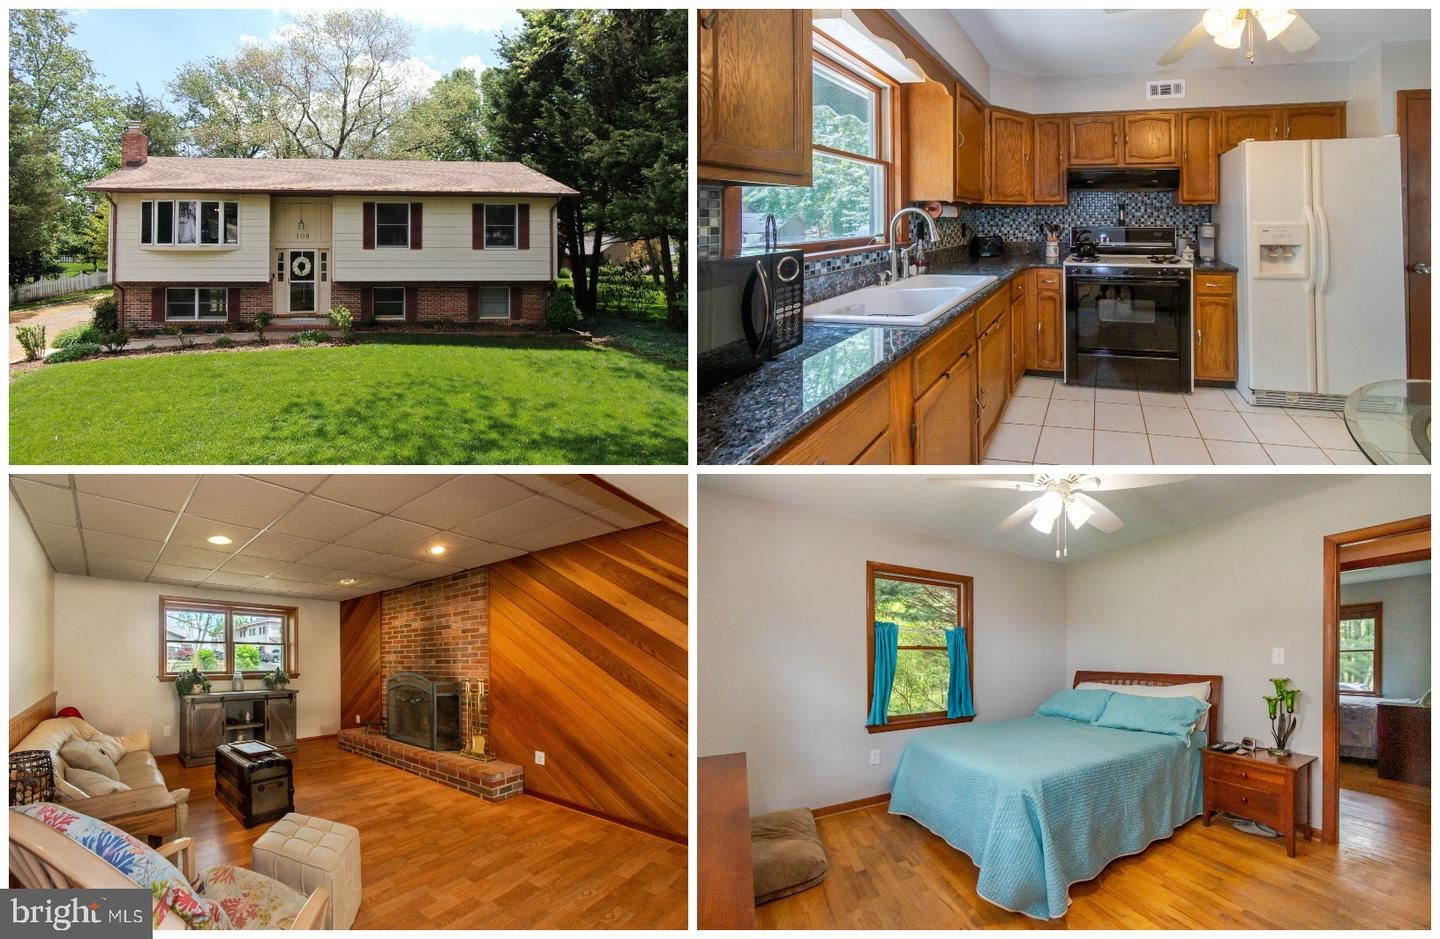 109 MANSION DR, Annapolis, MD 21403 - MLS#: MDAA466746